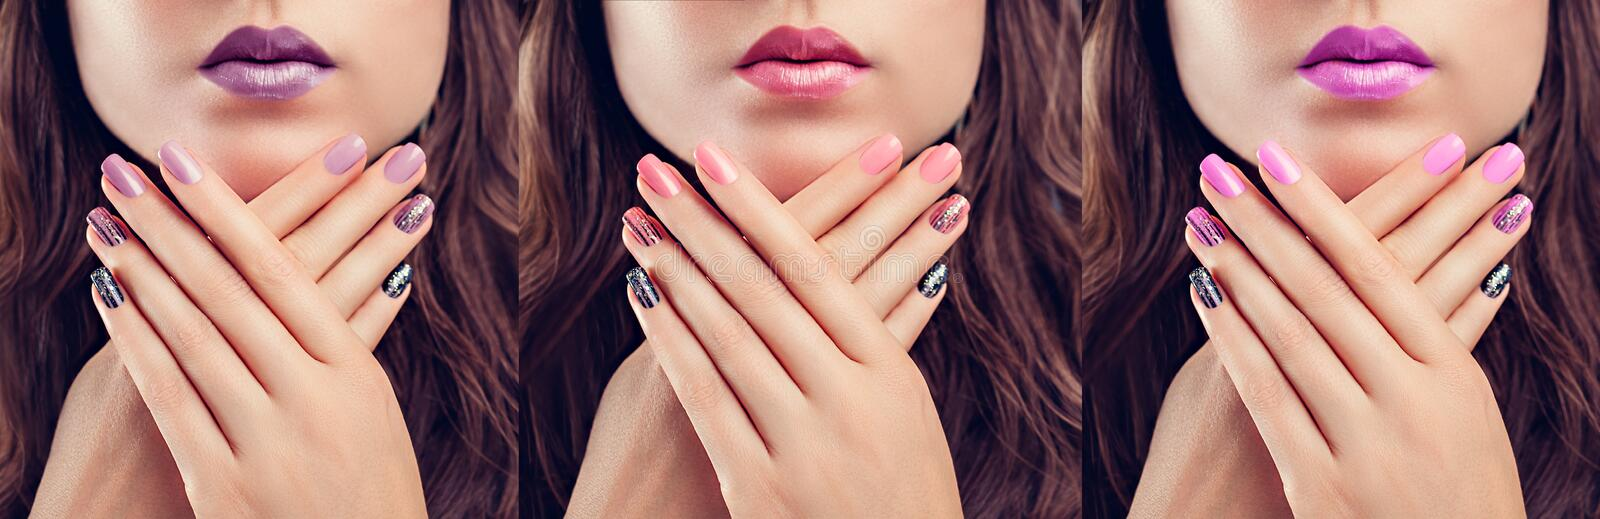 Beautiful woman with perfect make-up and manicure. Nail design. Fashion. Three shades stock image